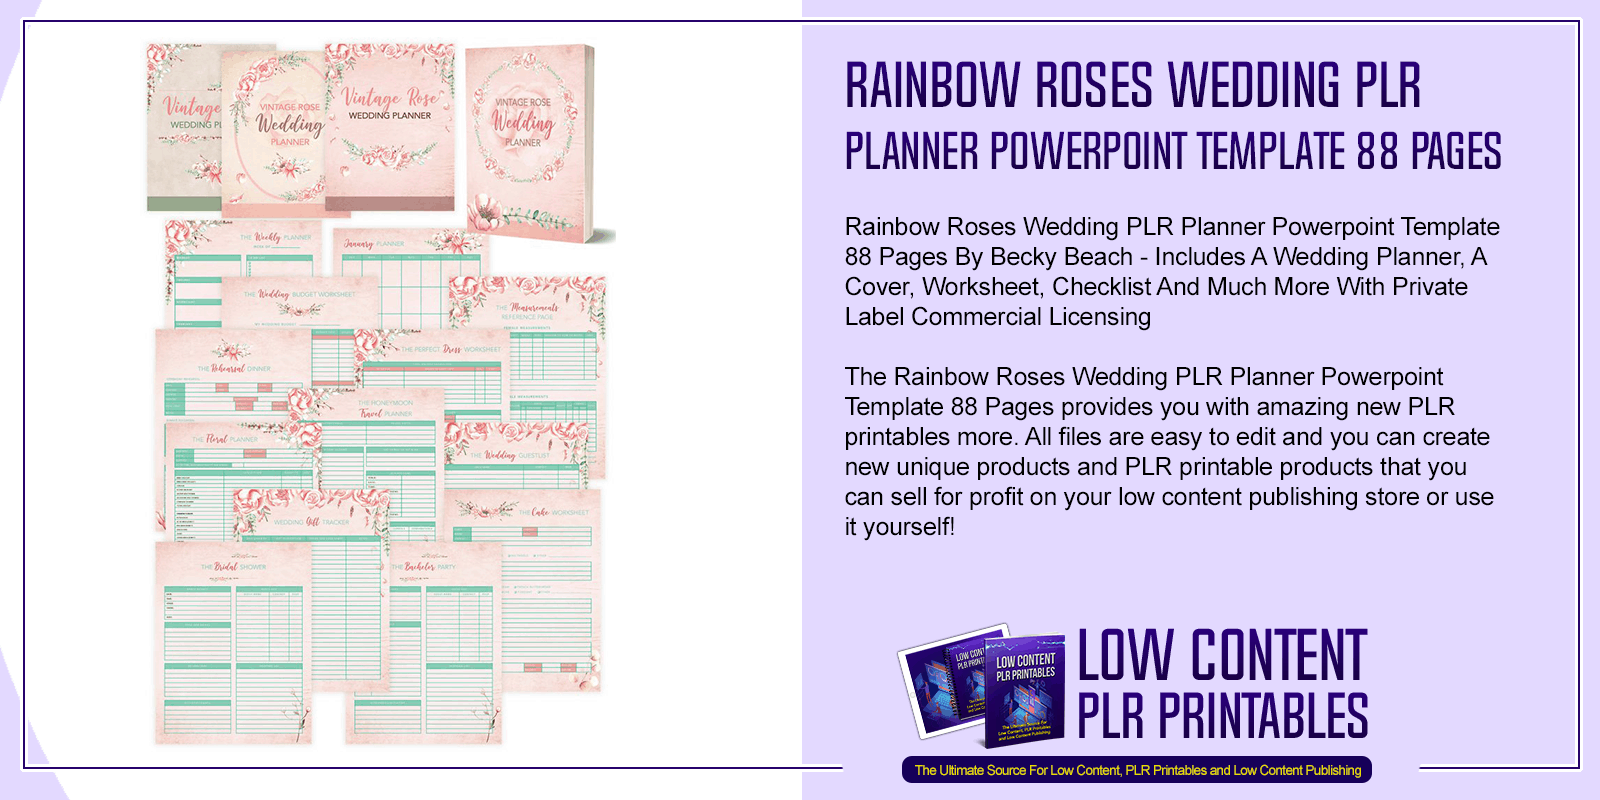 Rainbow Roses Wedding PLR Planner Powerpoint Template 88 Pages